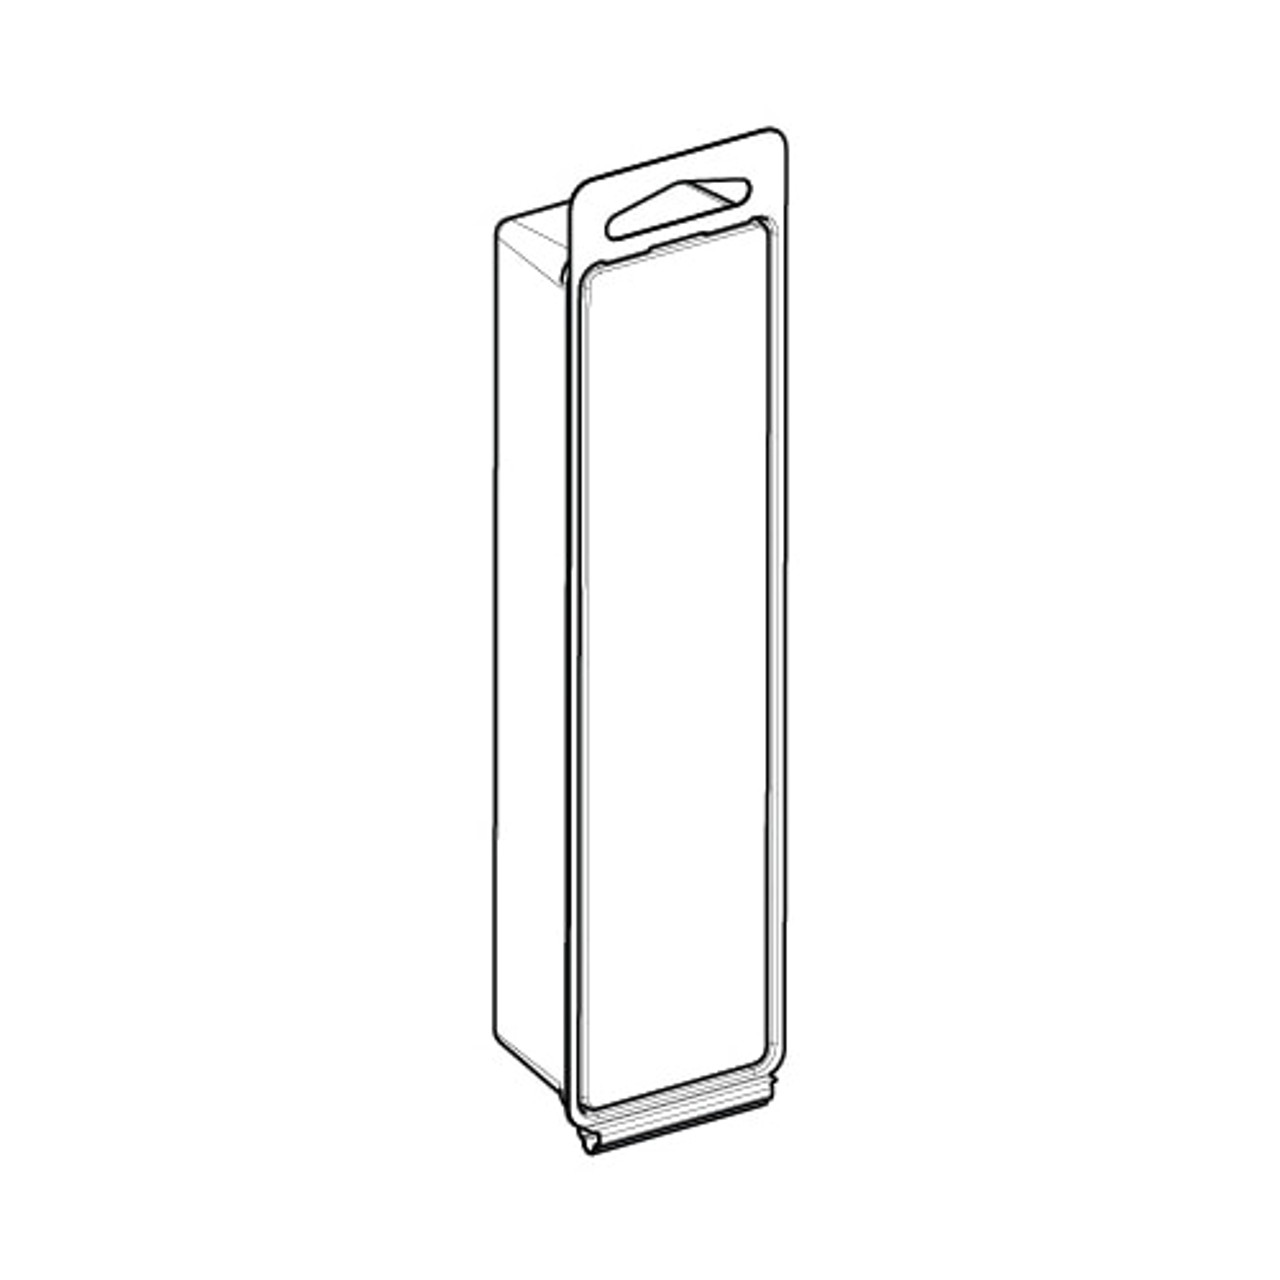 099462 - Stock Clamshell Packaging